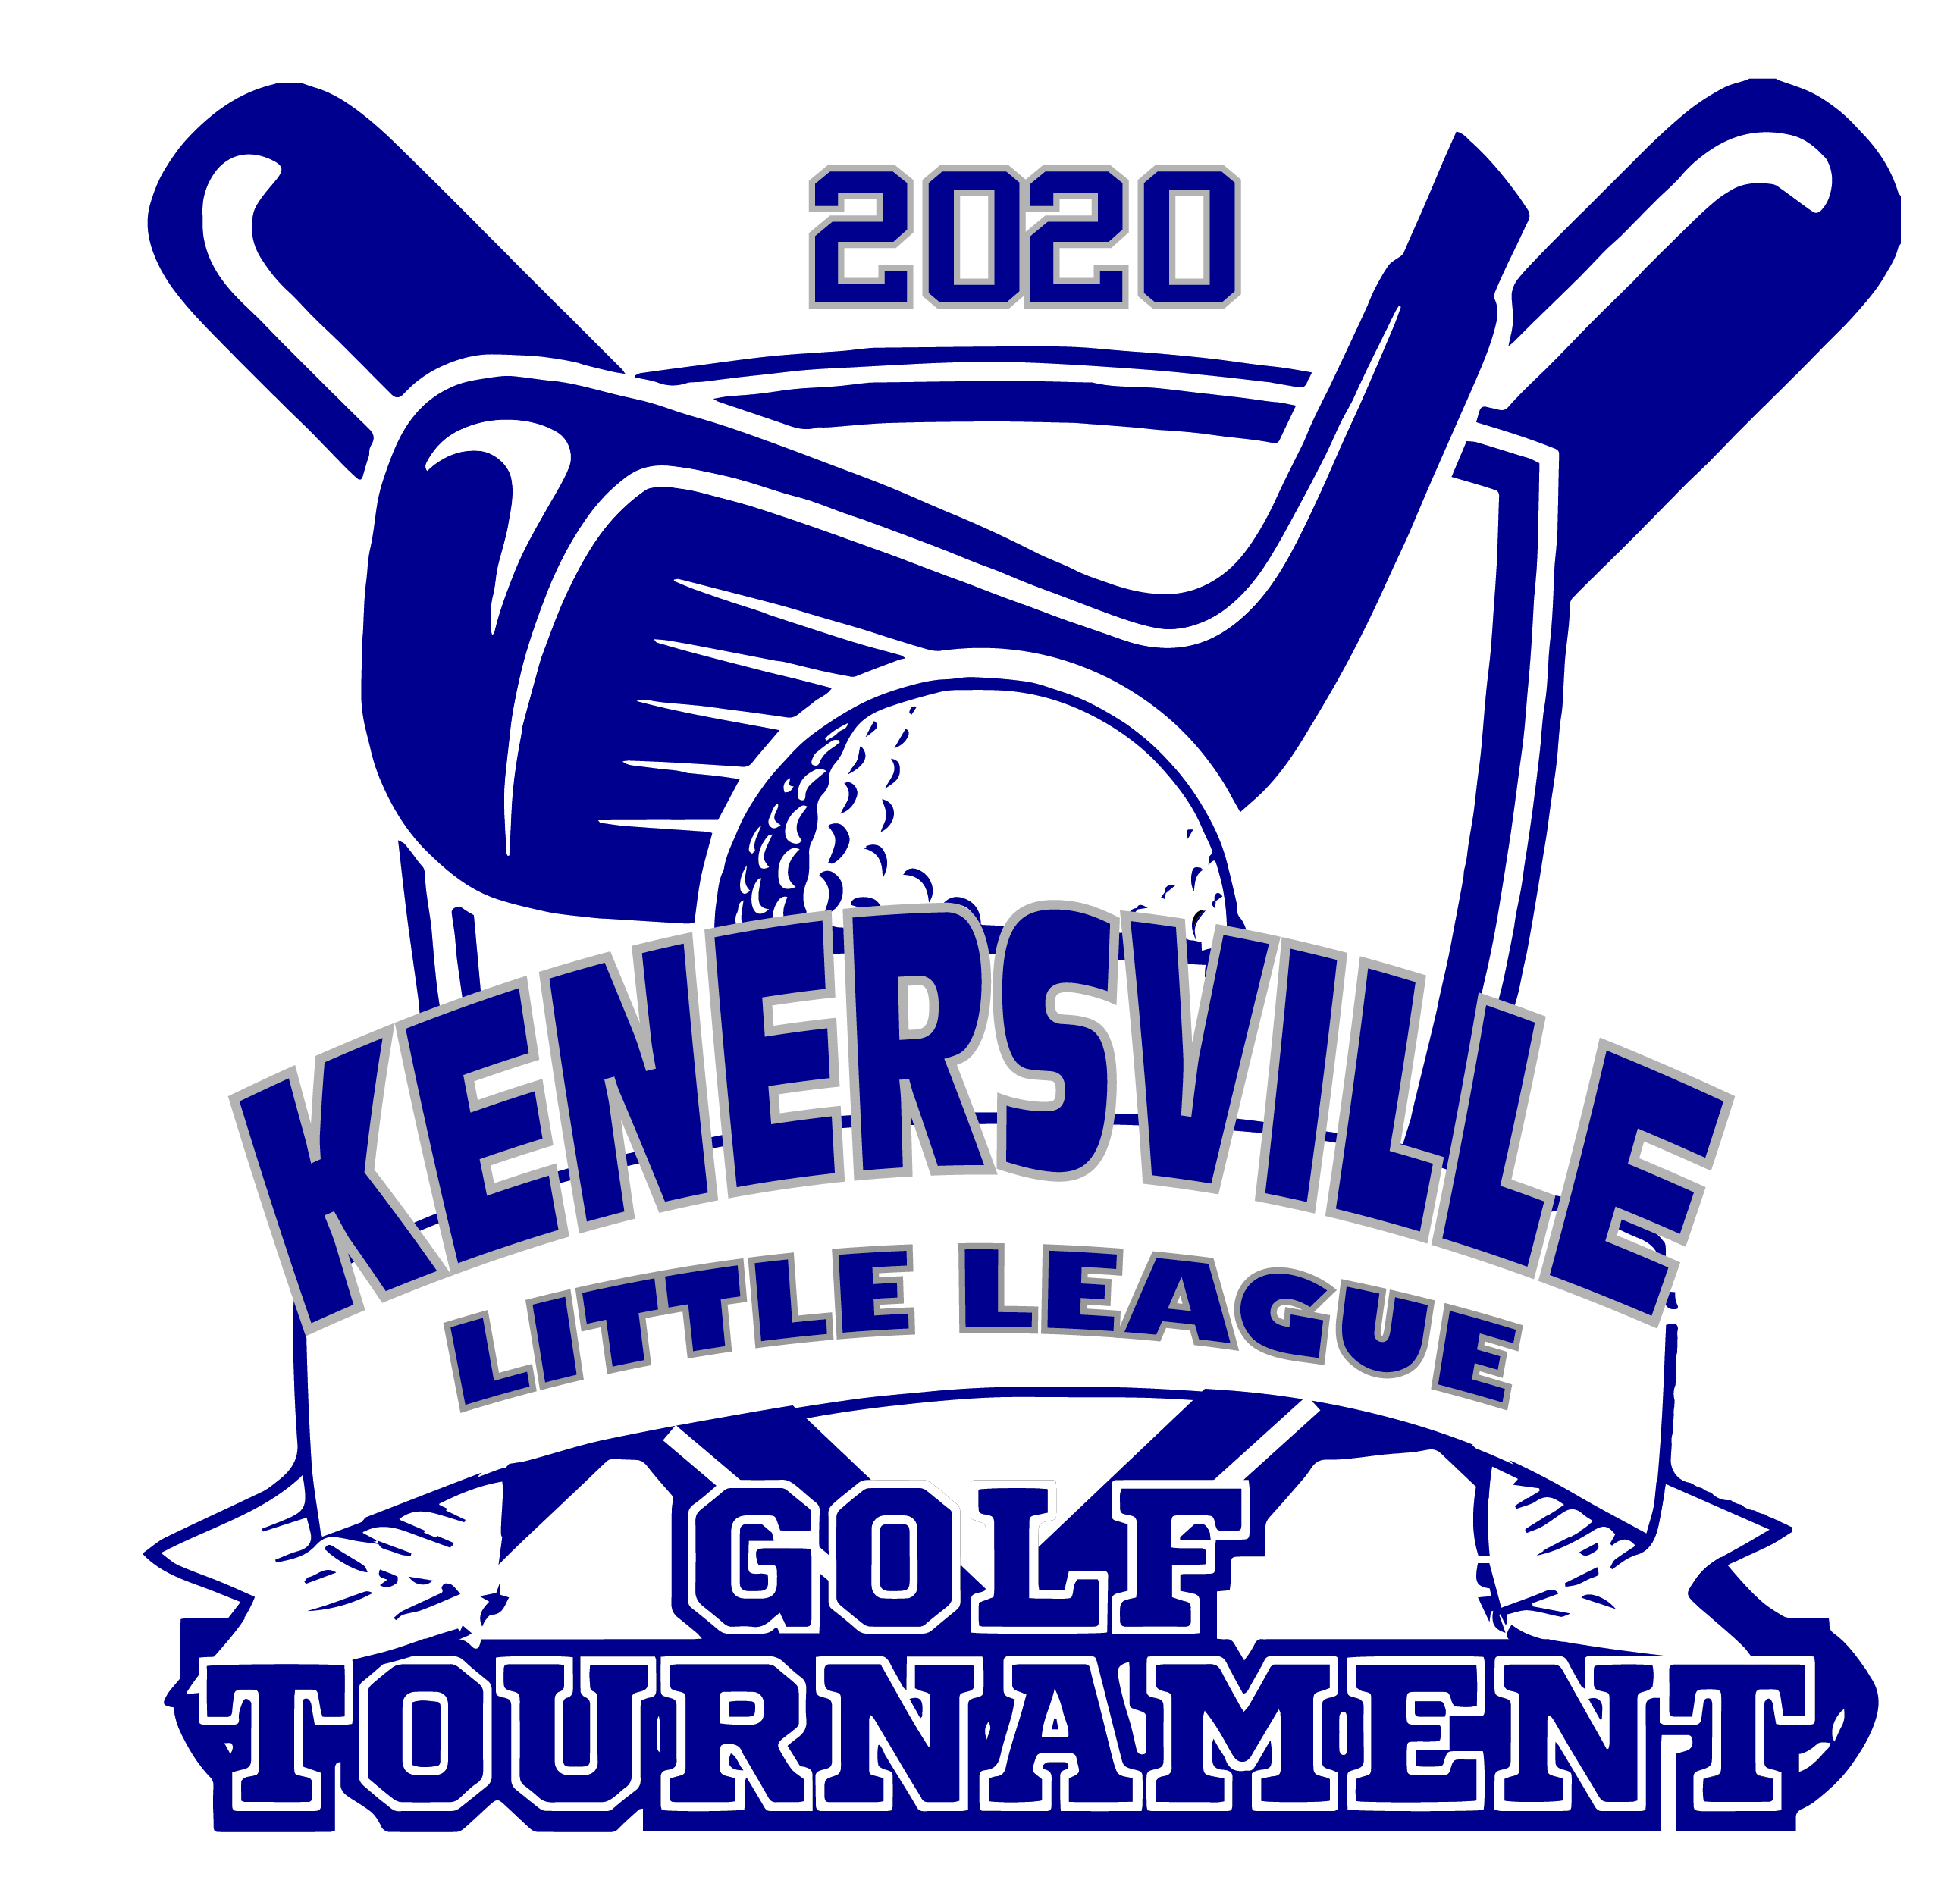 Kernersville Little League Golf Tournament logo